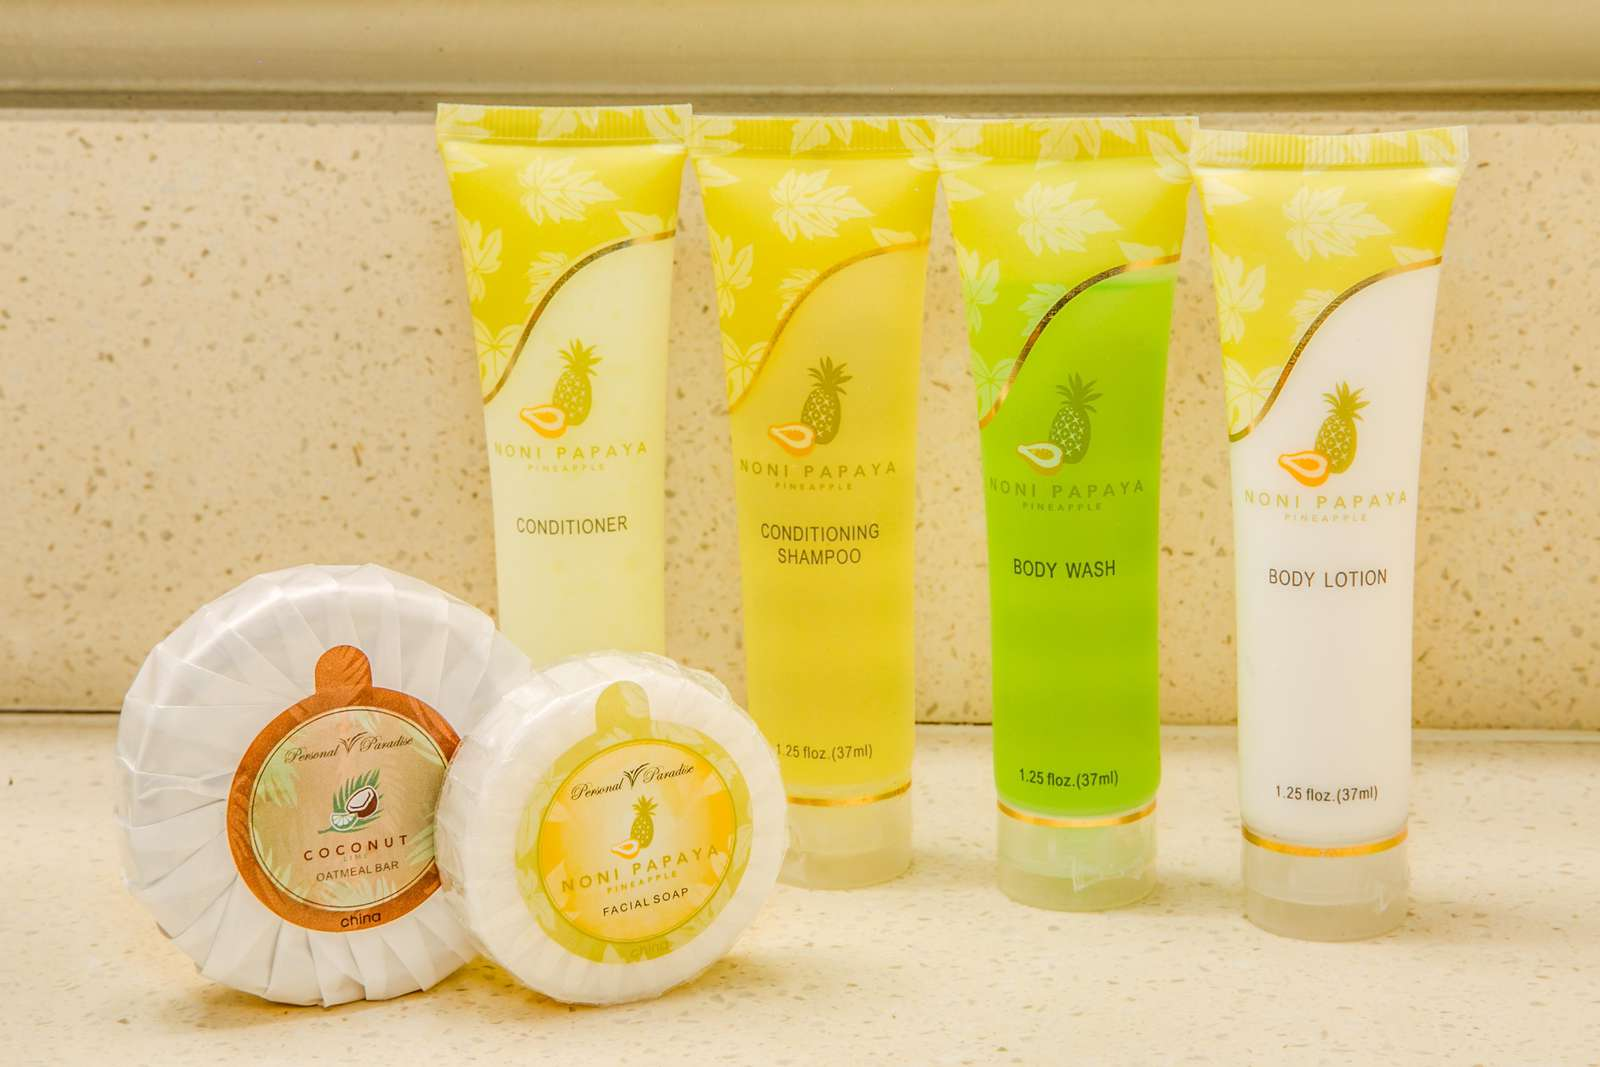 Shampoo and Soaps to get you started